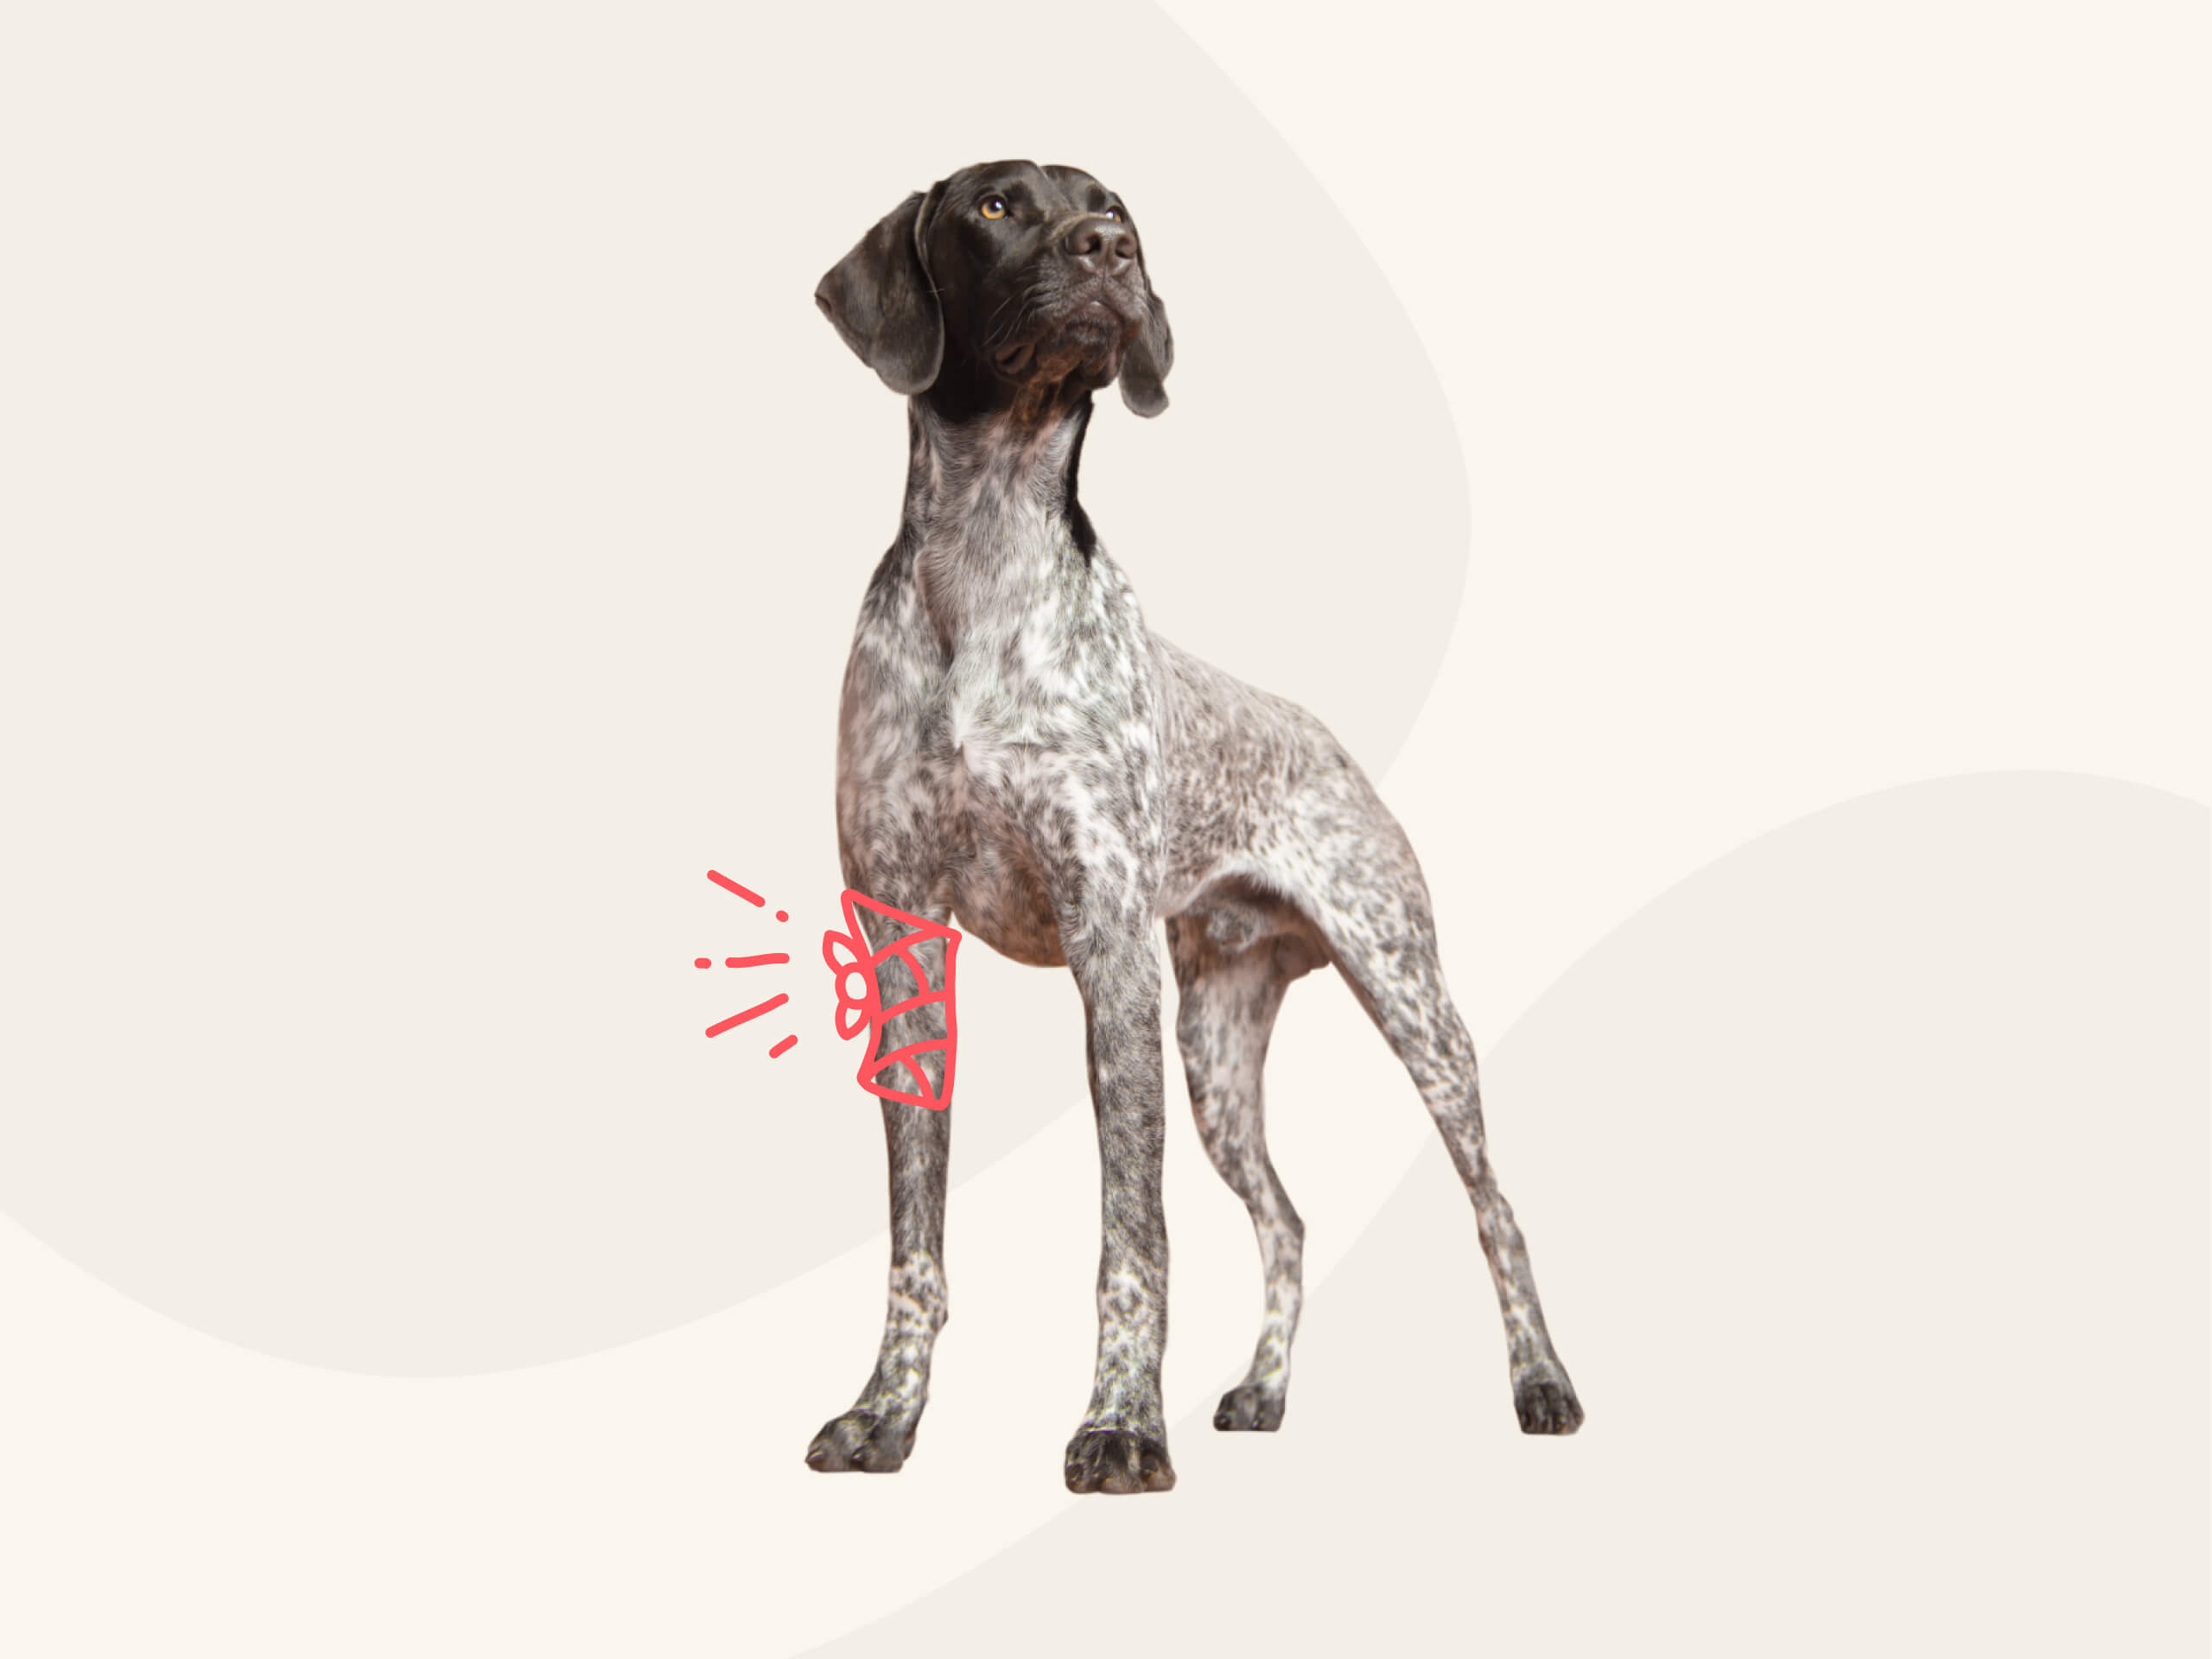 A German Short-Haired Pointer standing up on a pink background.